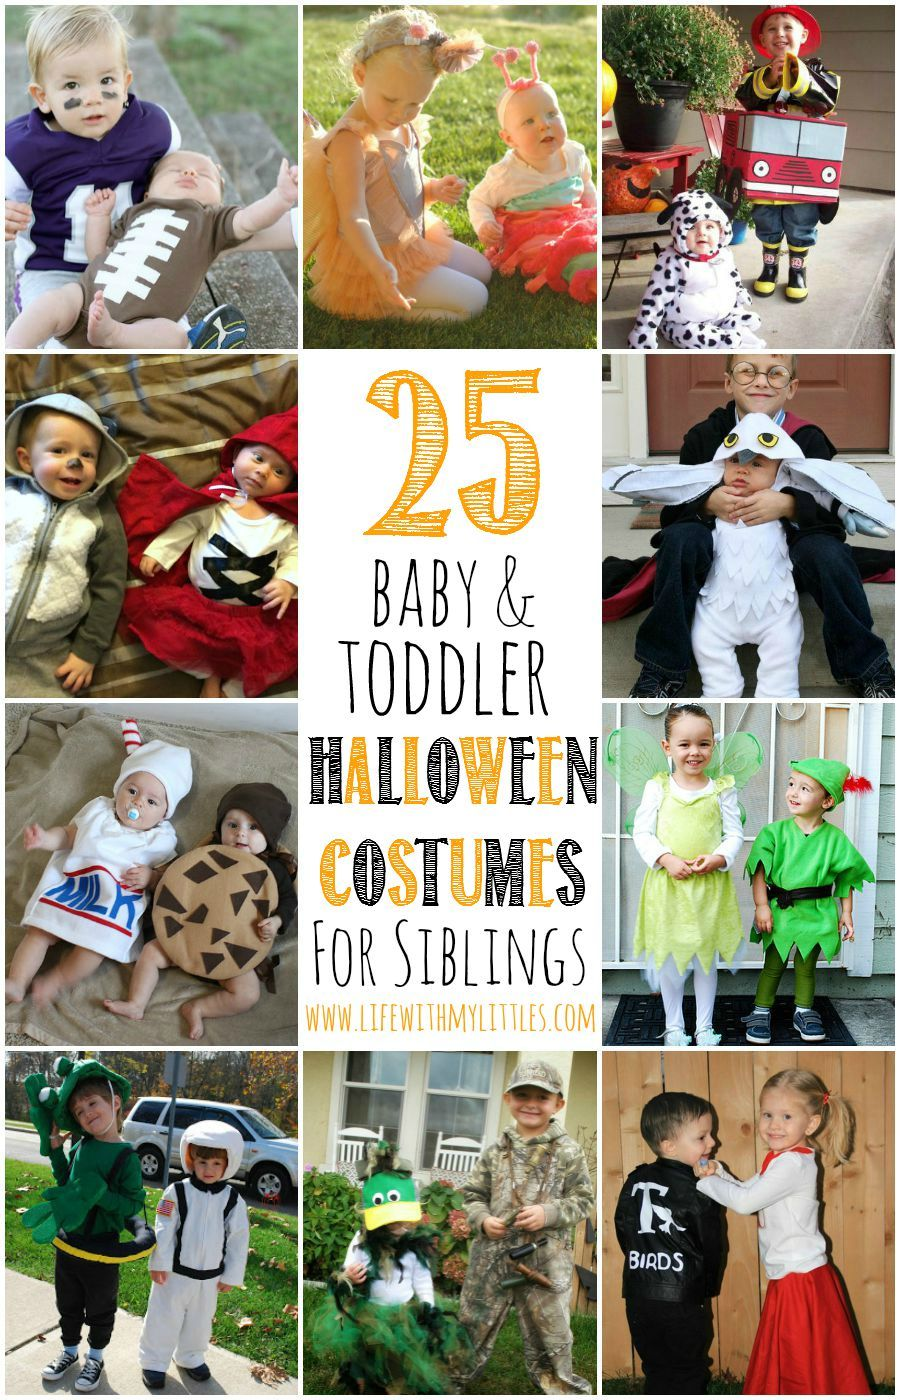 25 baby and toddler halloween costumes for siblings - Halloween Ideas For Siblings